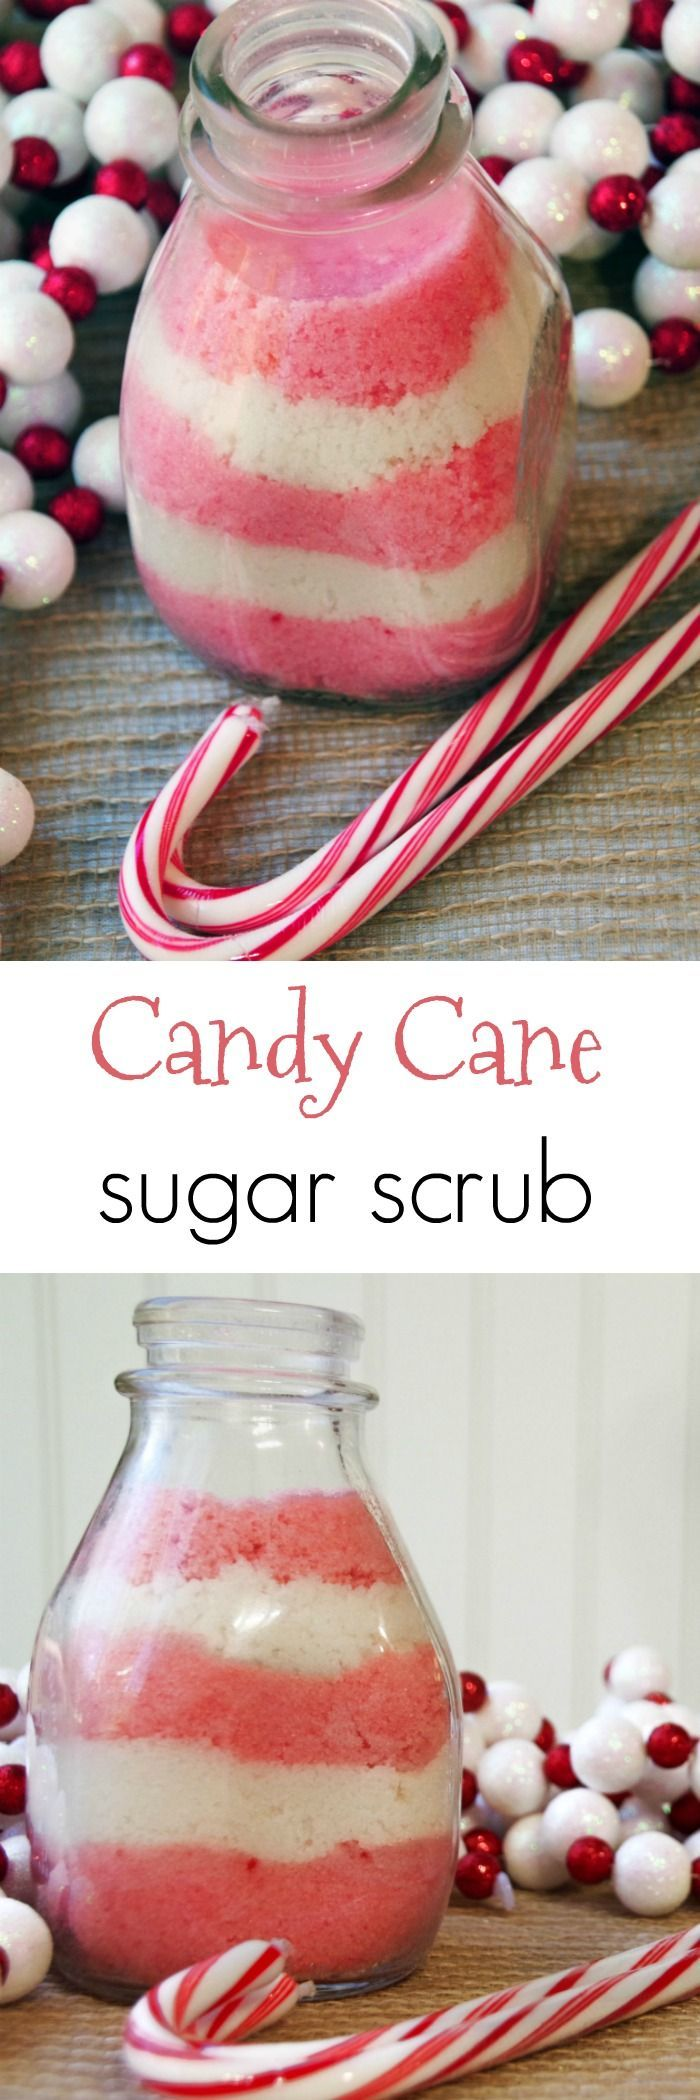 This candy cane sugar scrub recipe is a simple homemade beauty product that is both beautiful and functional!